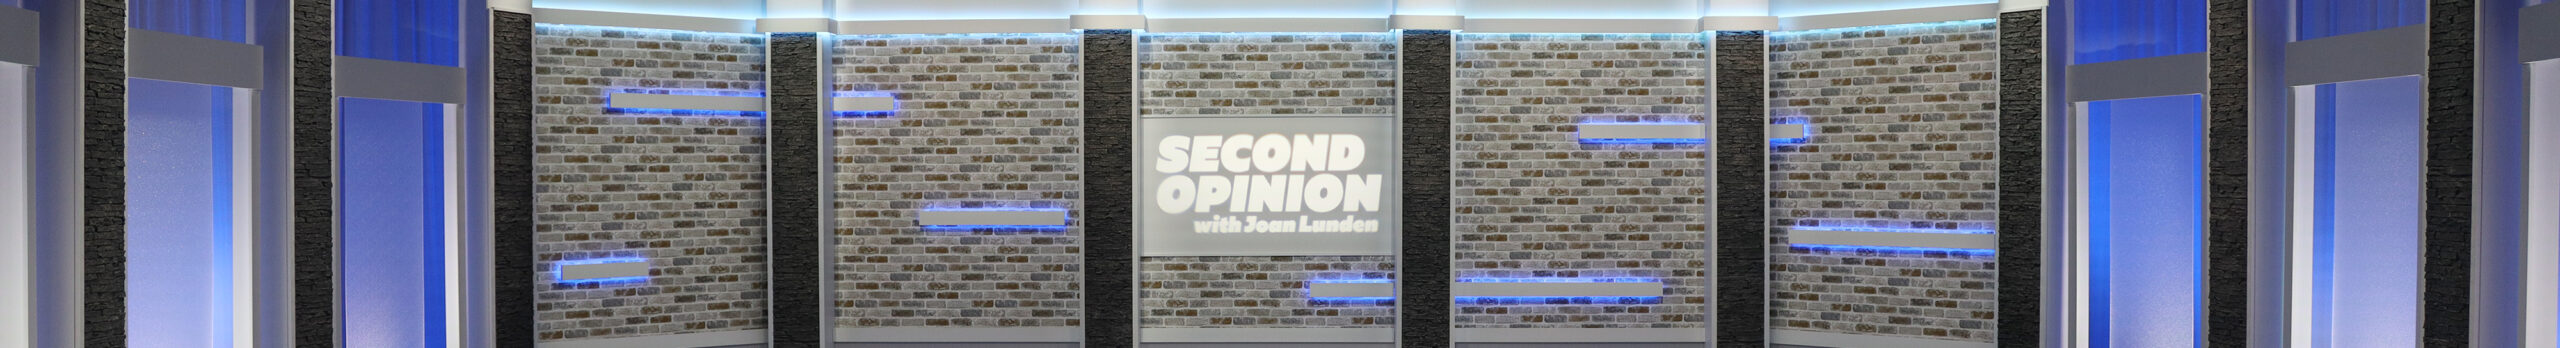 Second Opinion Set Banner Image